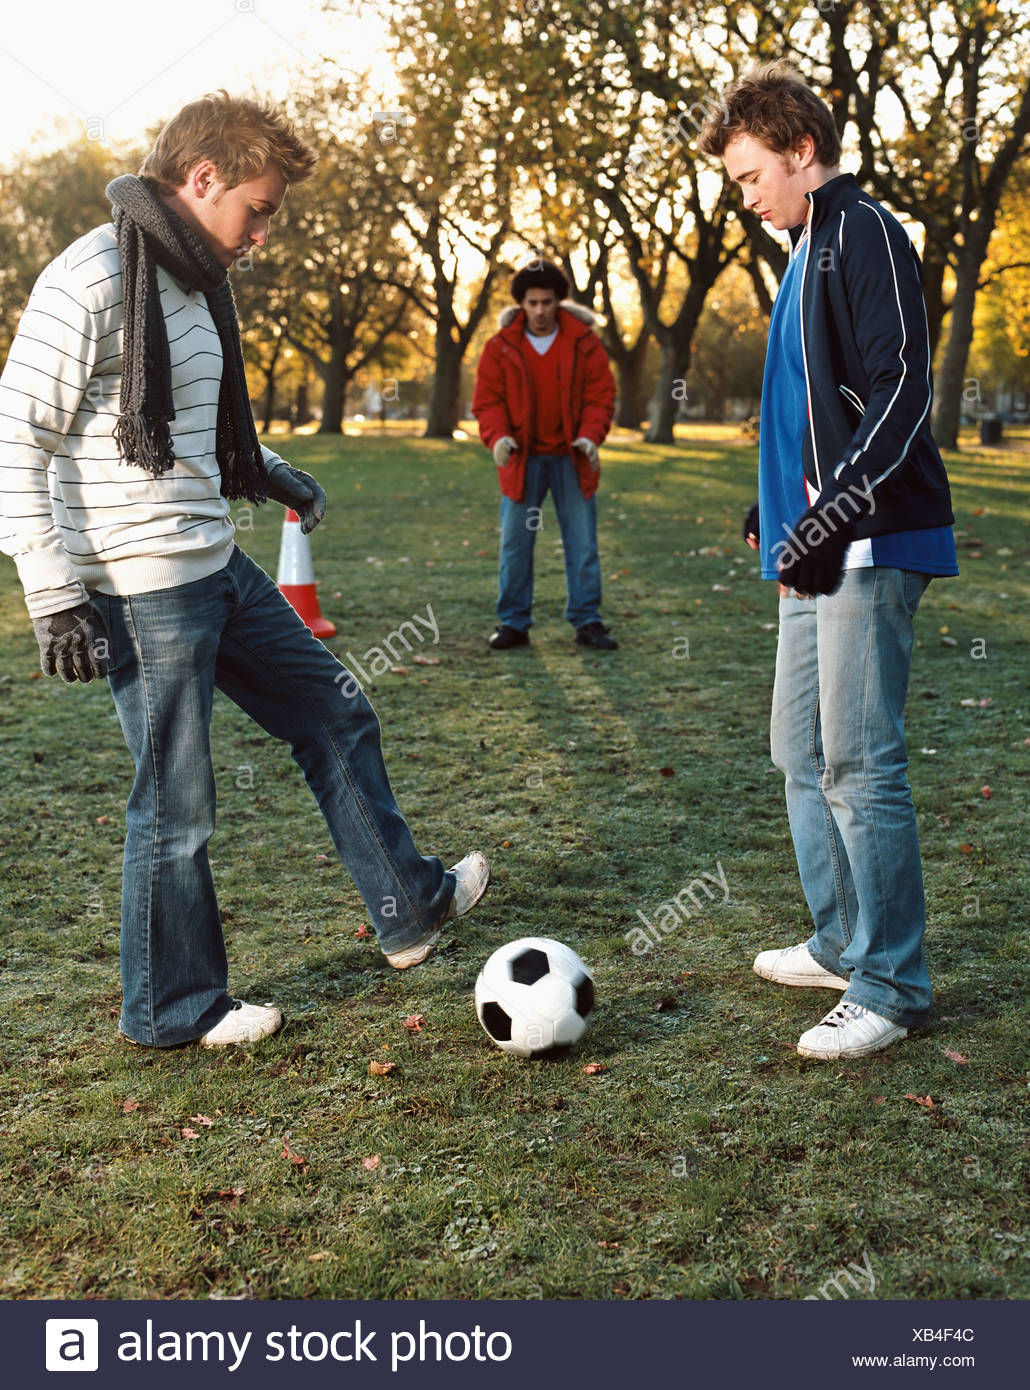 Men playing football in park - Stock Image